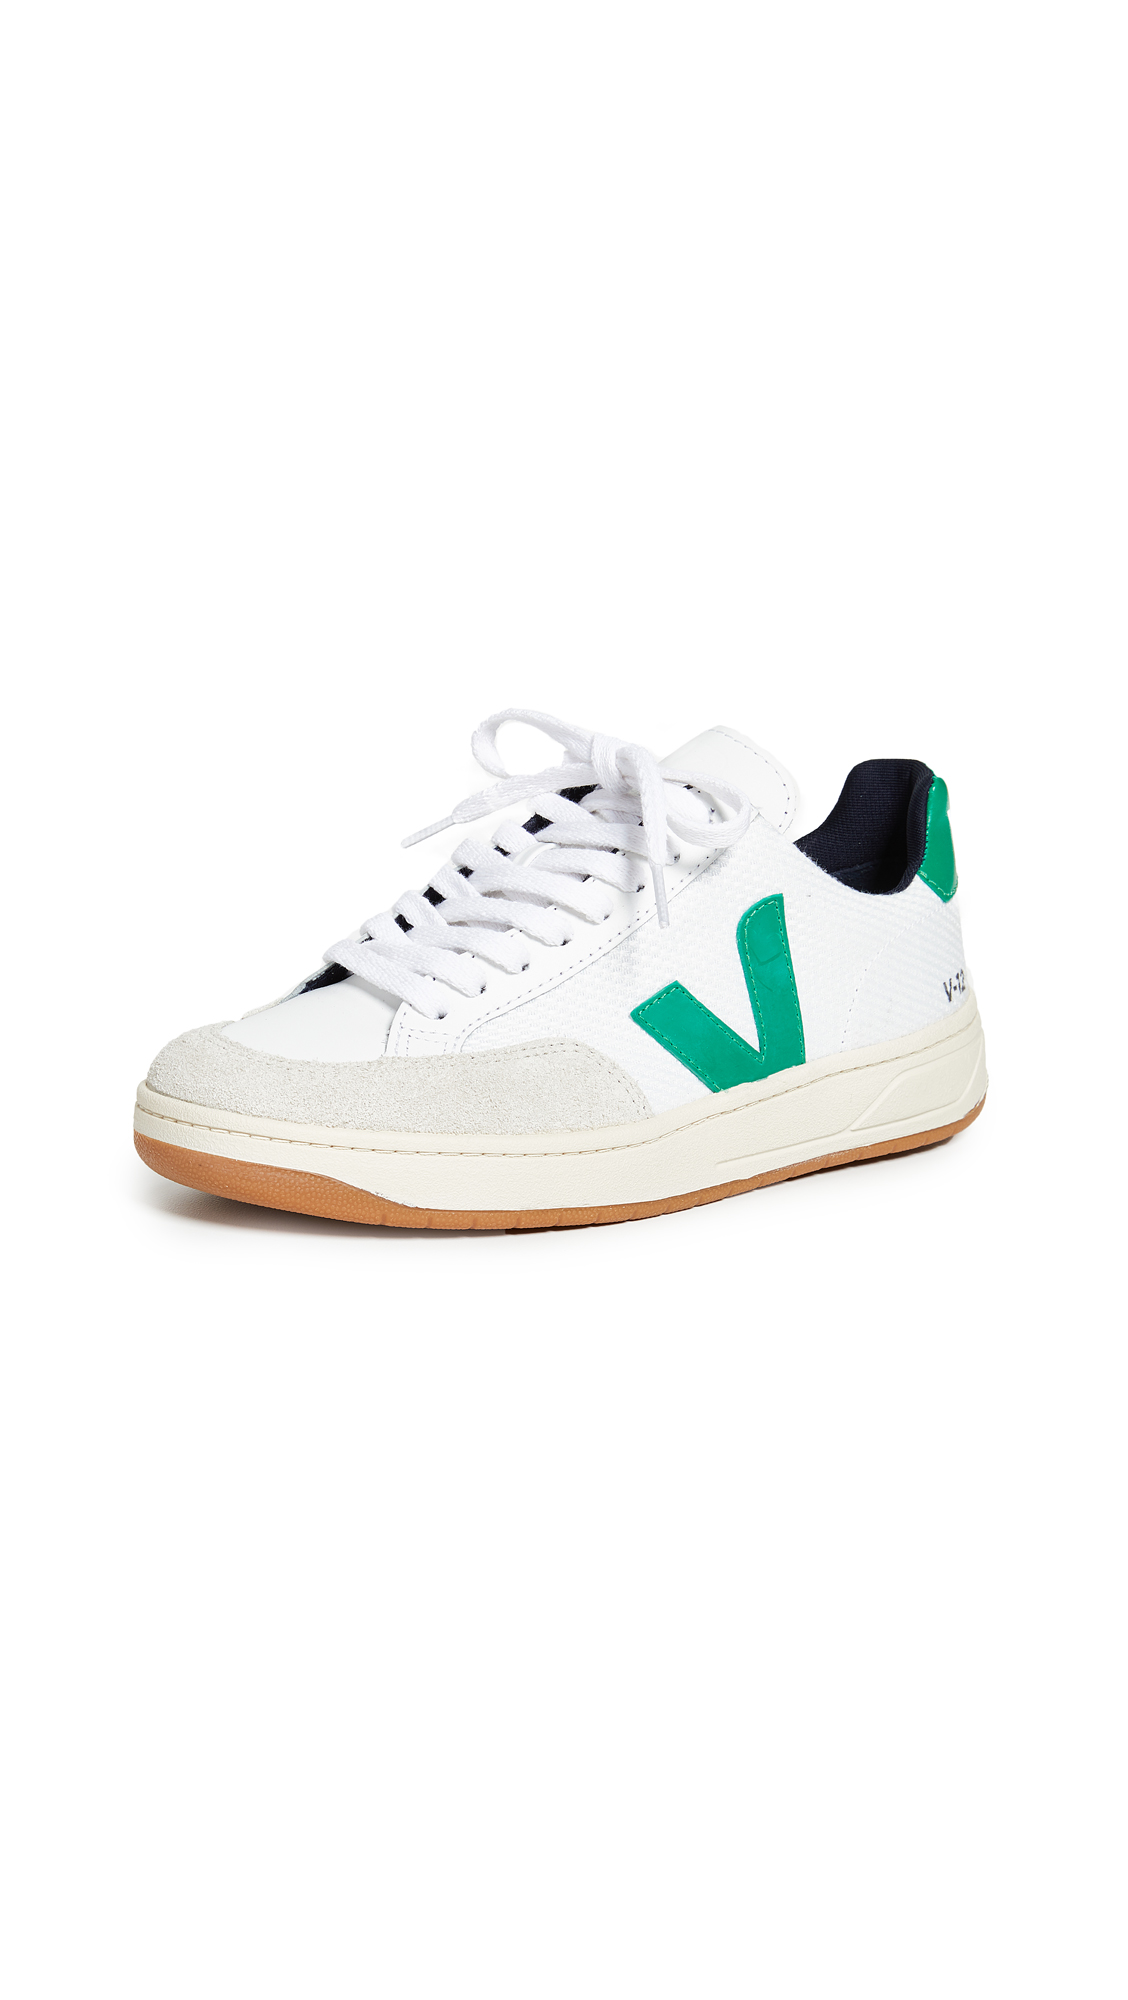 Veja V-12 Sneakers In White/Emeraude